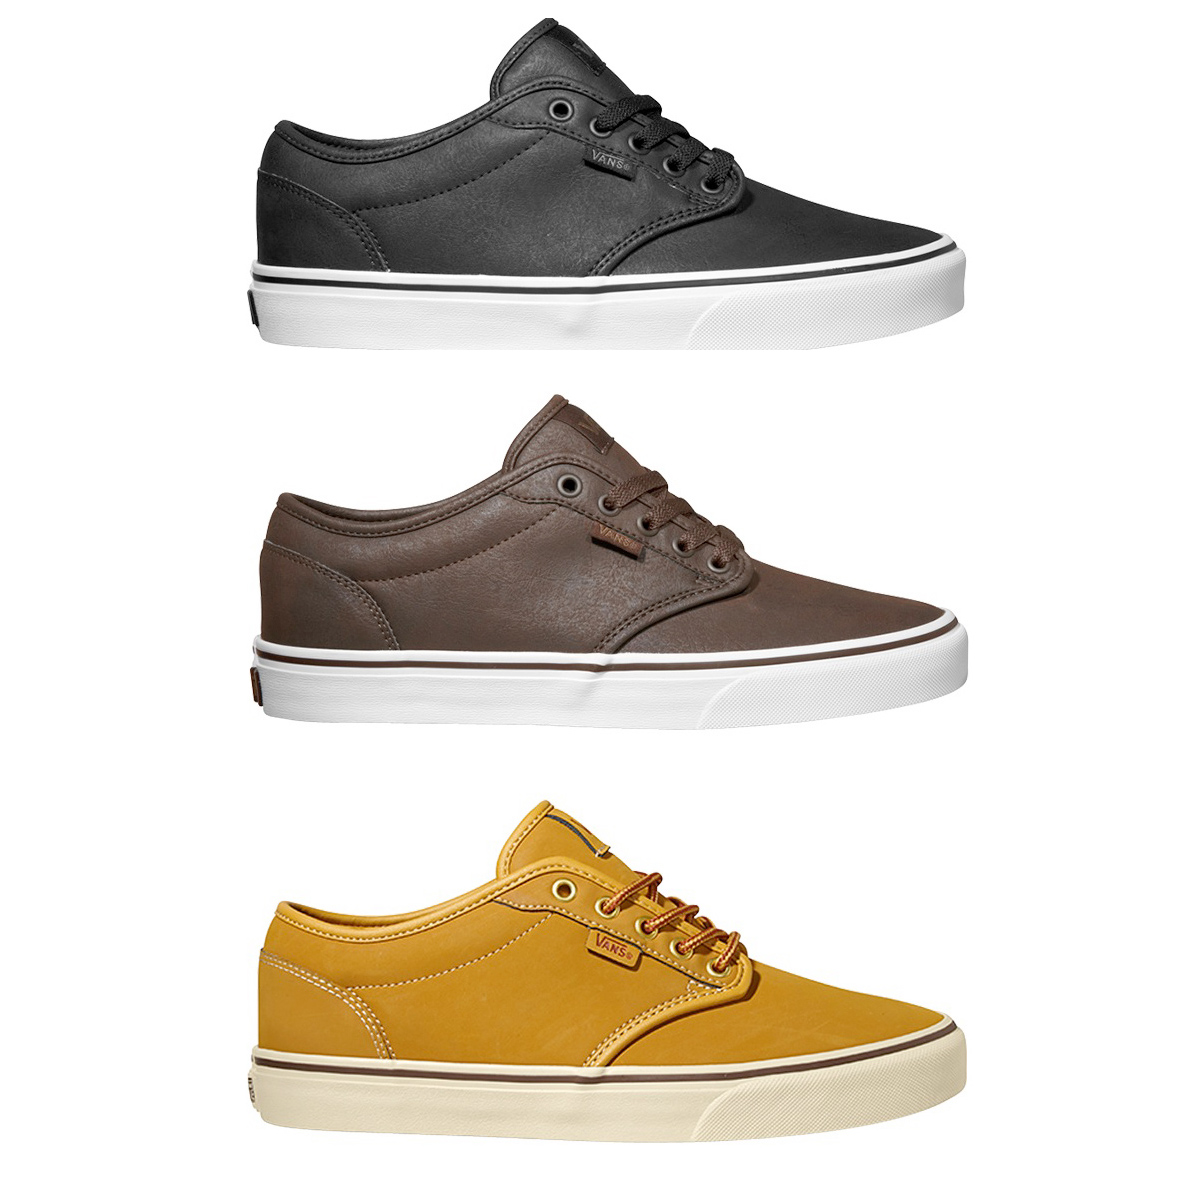 eb9a2267fe Sentinel Vans Mens Shoes - Atwood Buck Leather - Skate